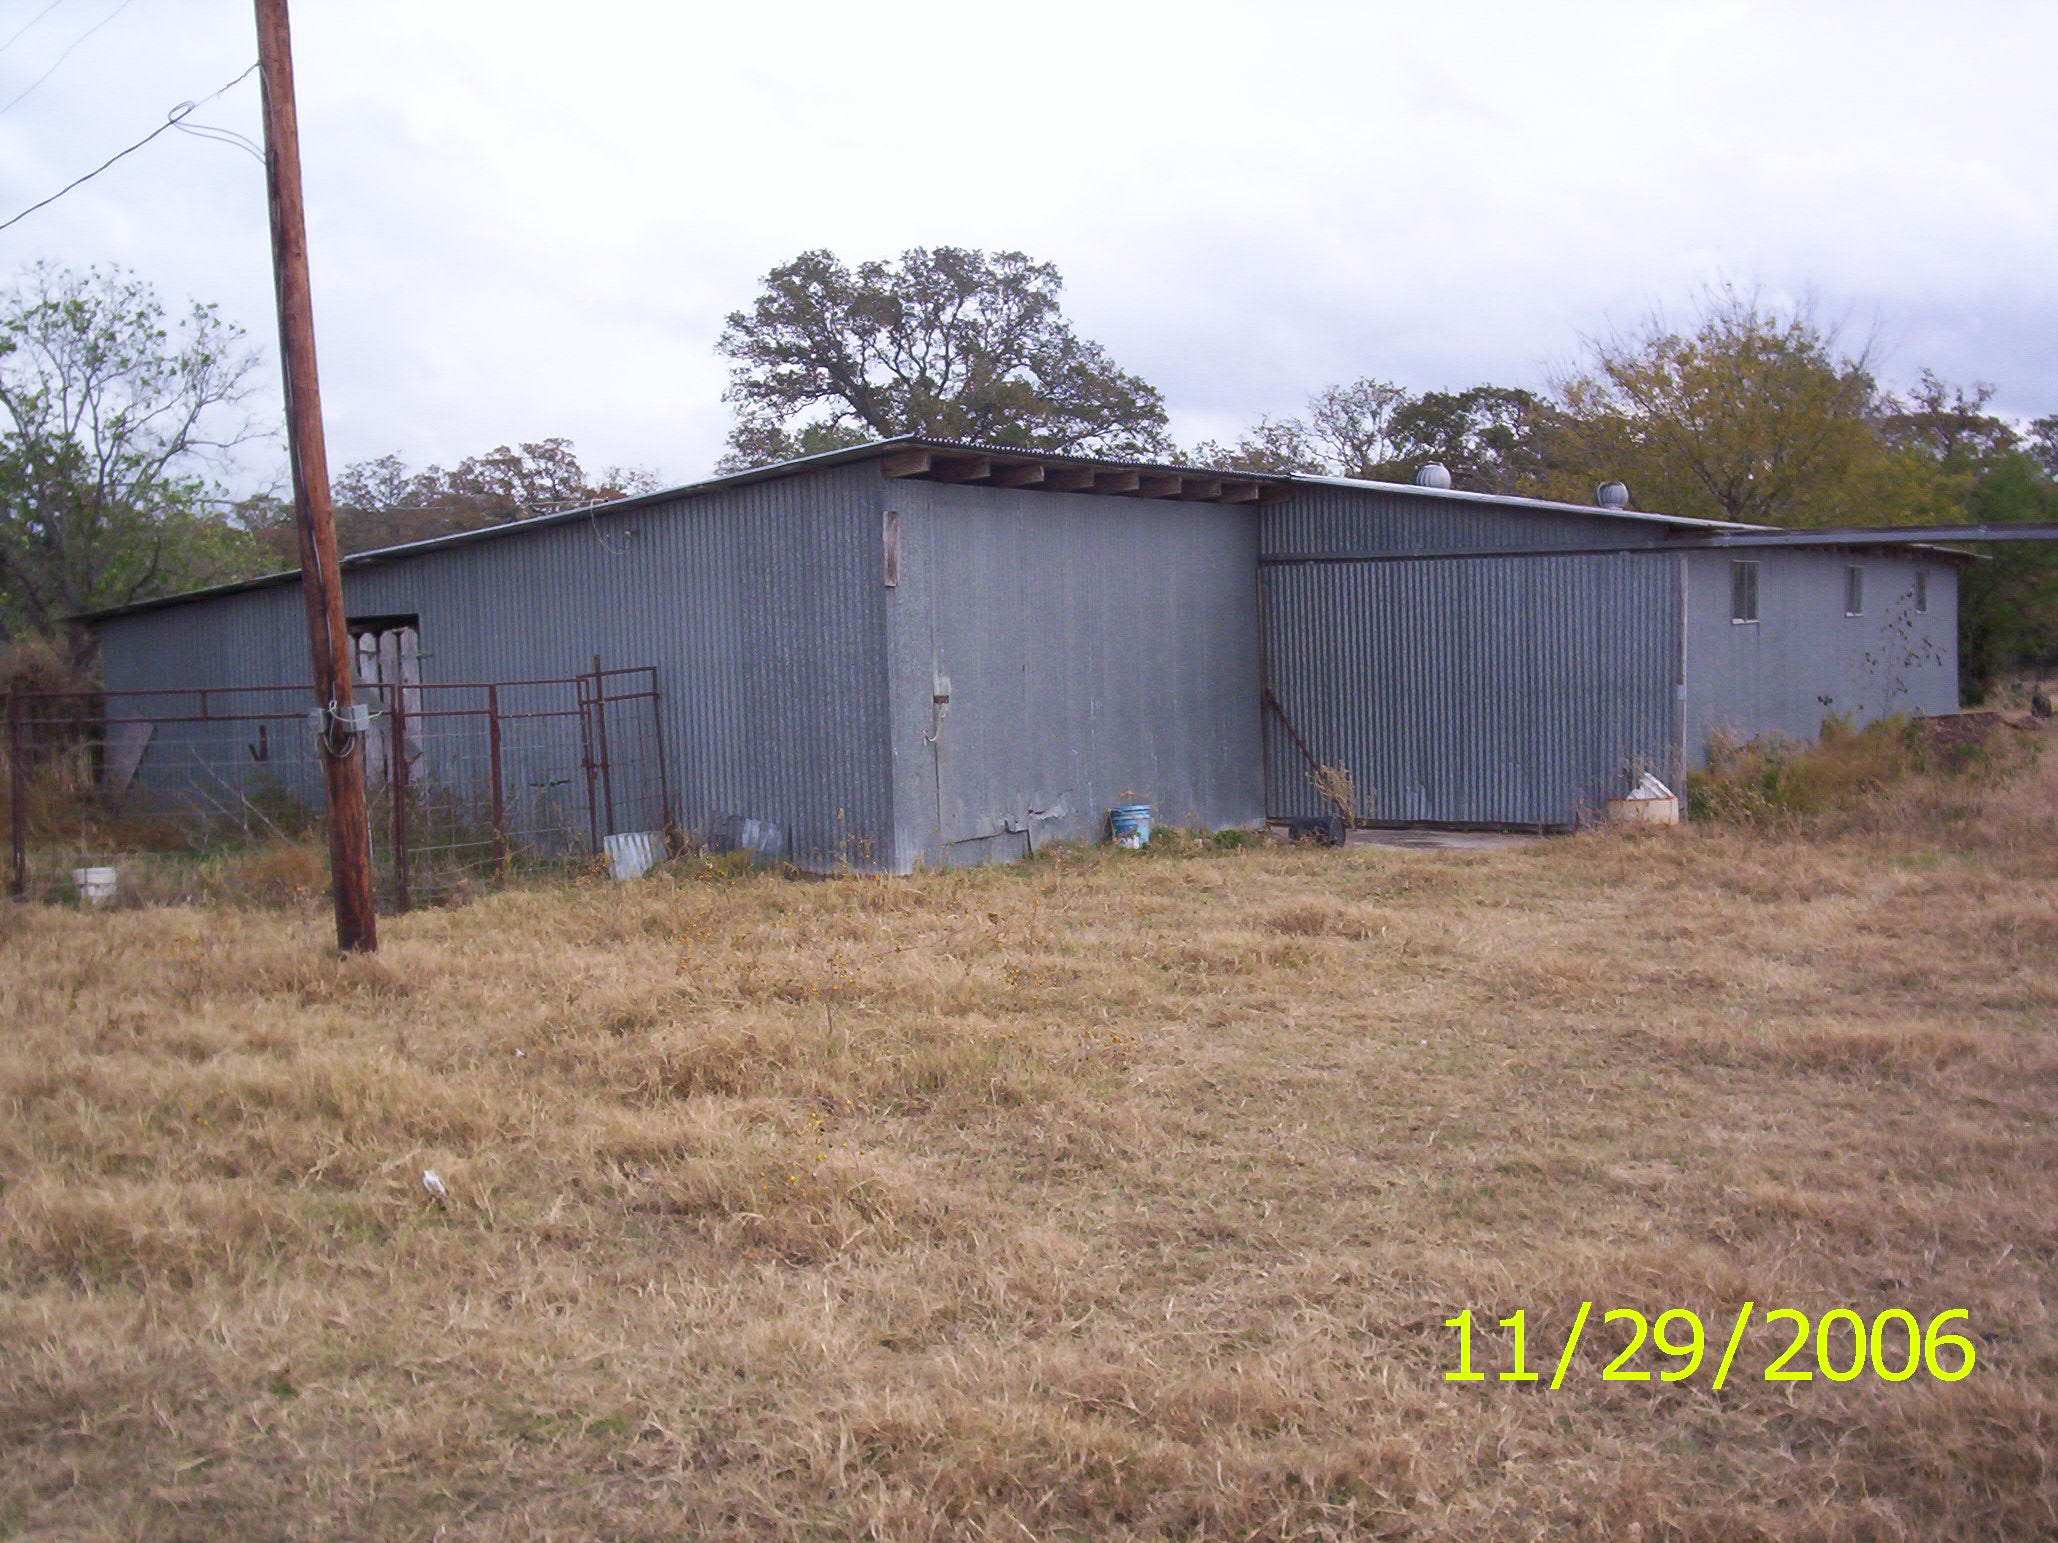 Tommy Tipton sold this nearly 102-acre property with a few farm buildings in Fayette County, Texas in January, 2018.  It has a few market value of $580,730.